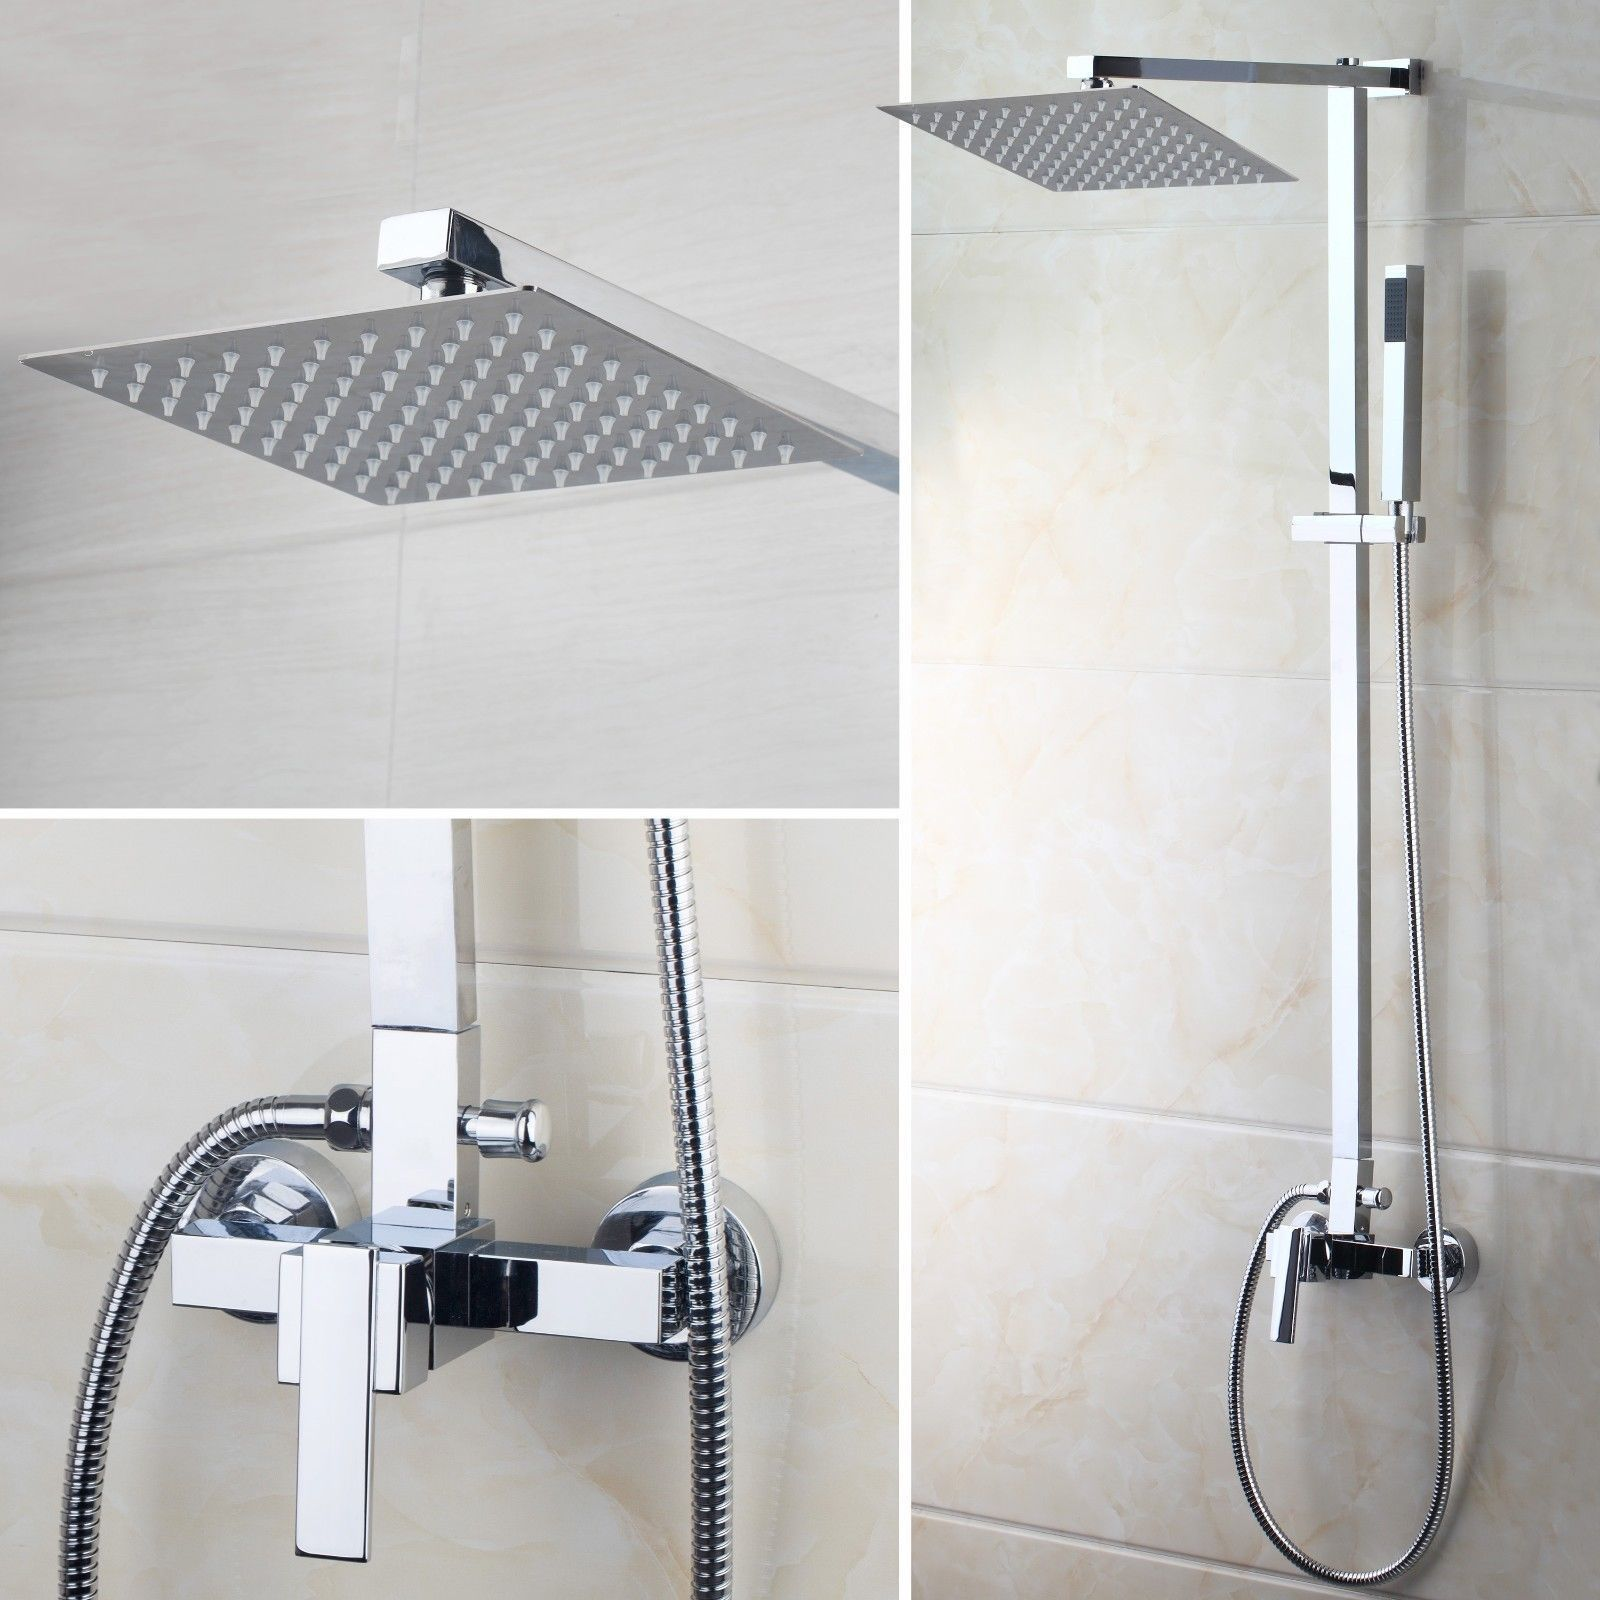 Http Www Ebay Com Itm Us 8 Rain Shower Head Faucet Set Bathtub